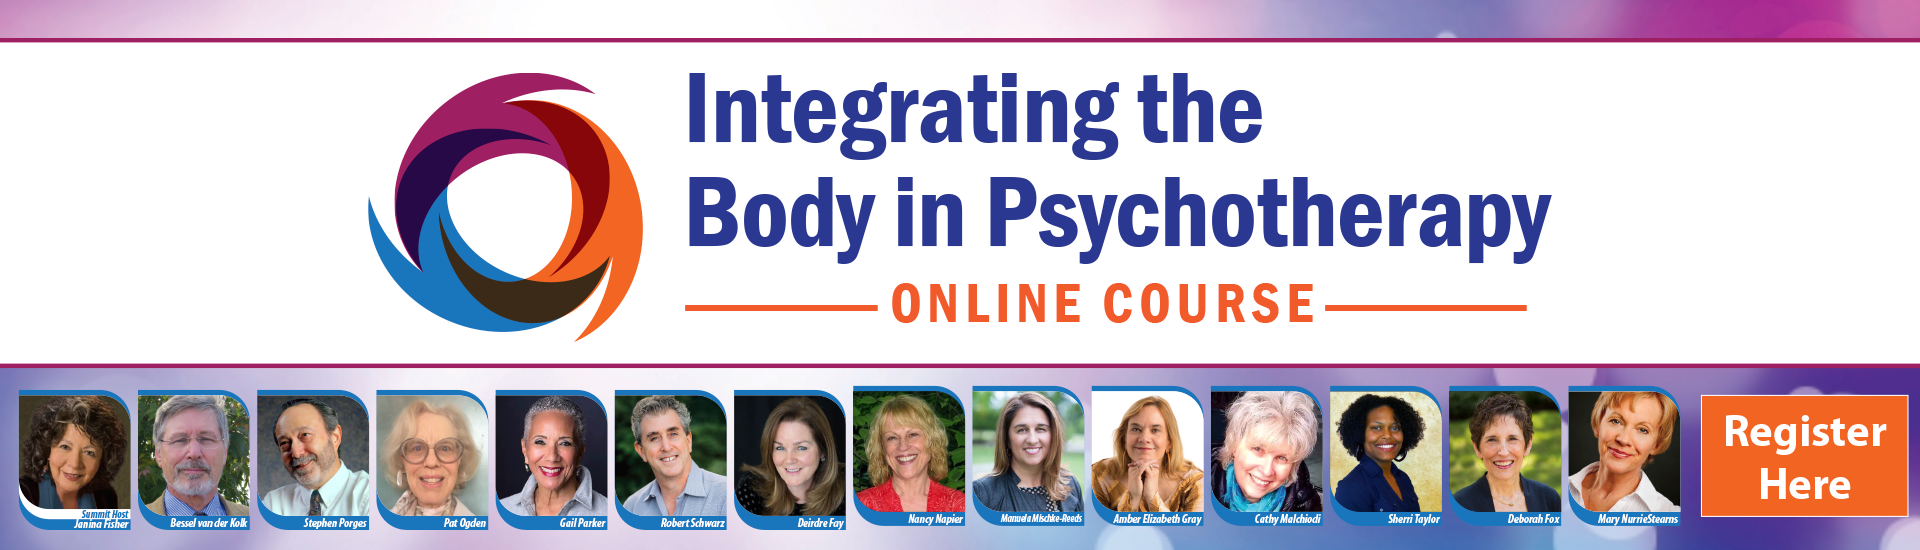 Integrating the Body in Psychotherapy